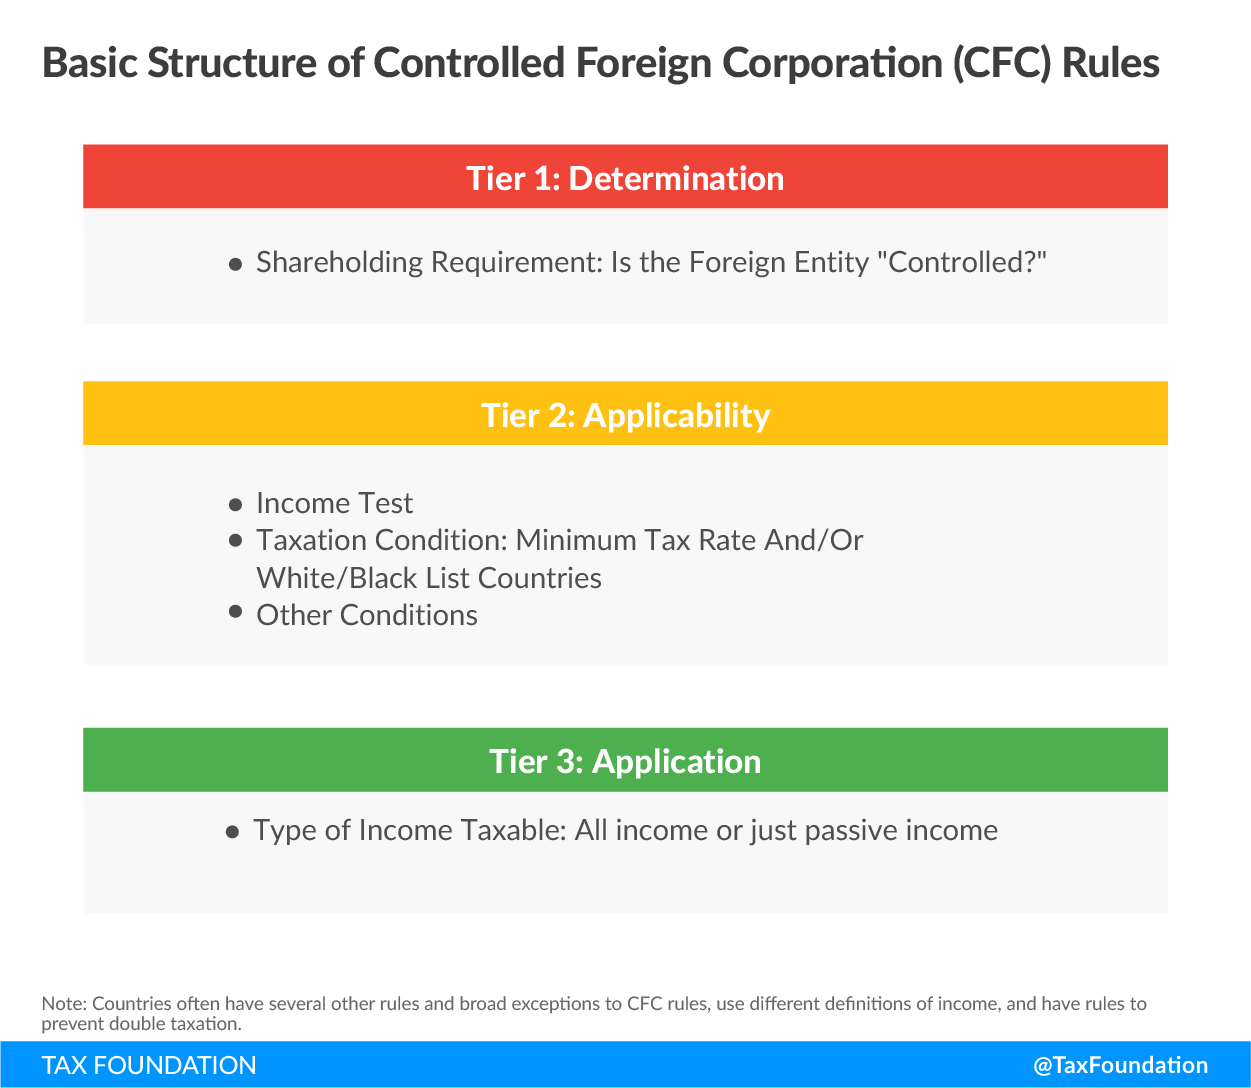 Basic-Structure-of-controlled-foreign-corporation-CFC-rules